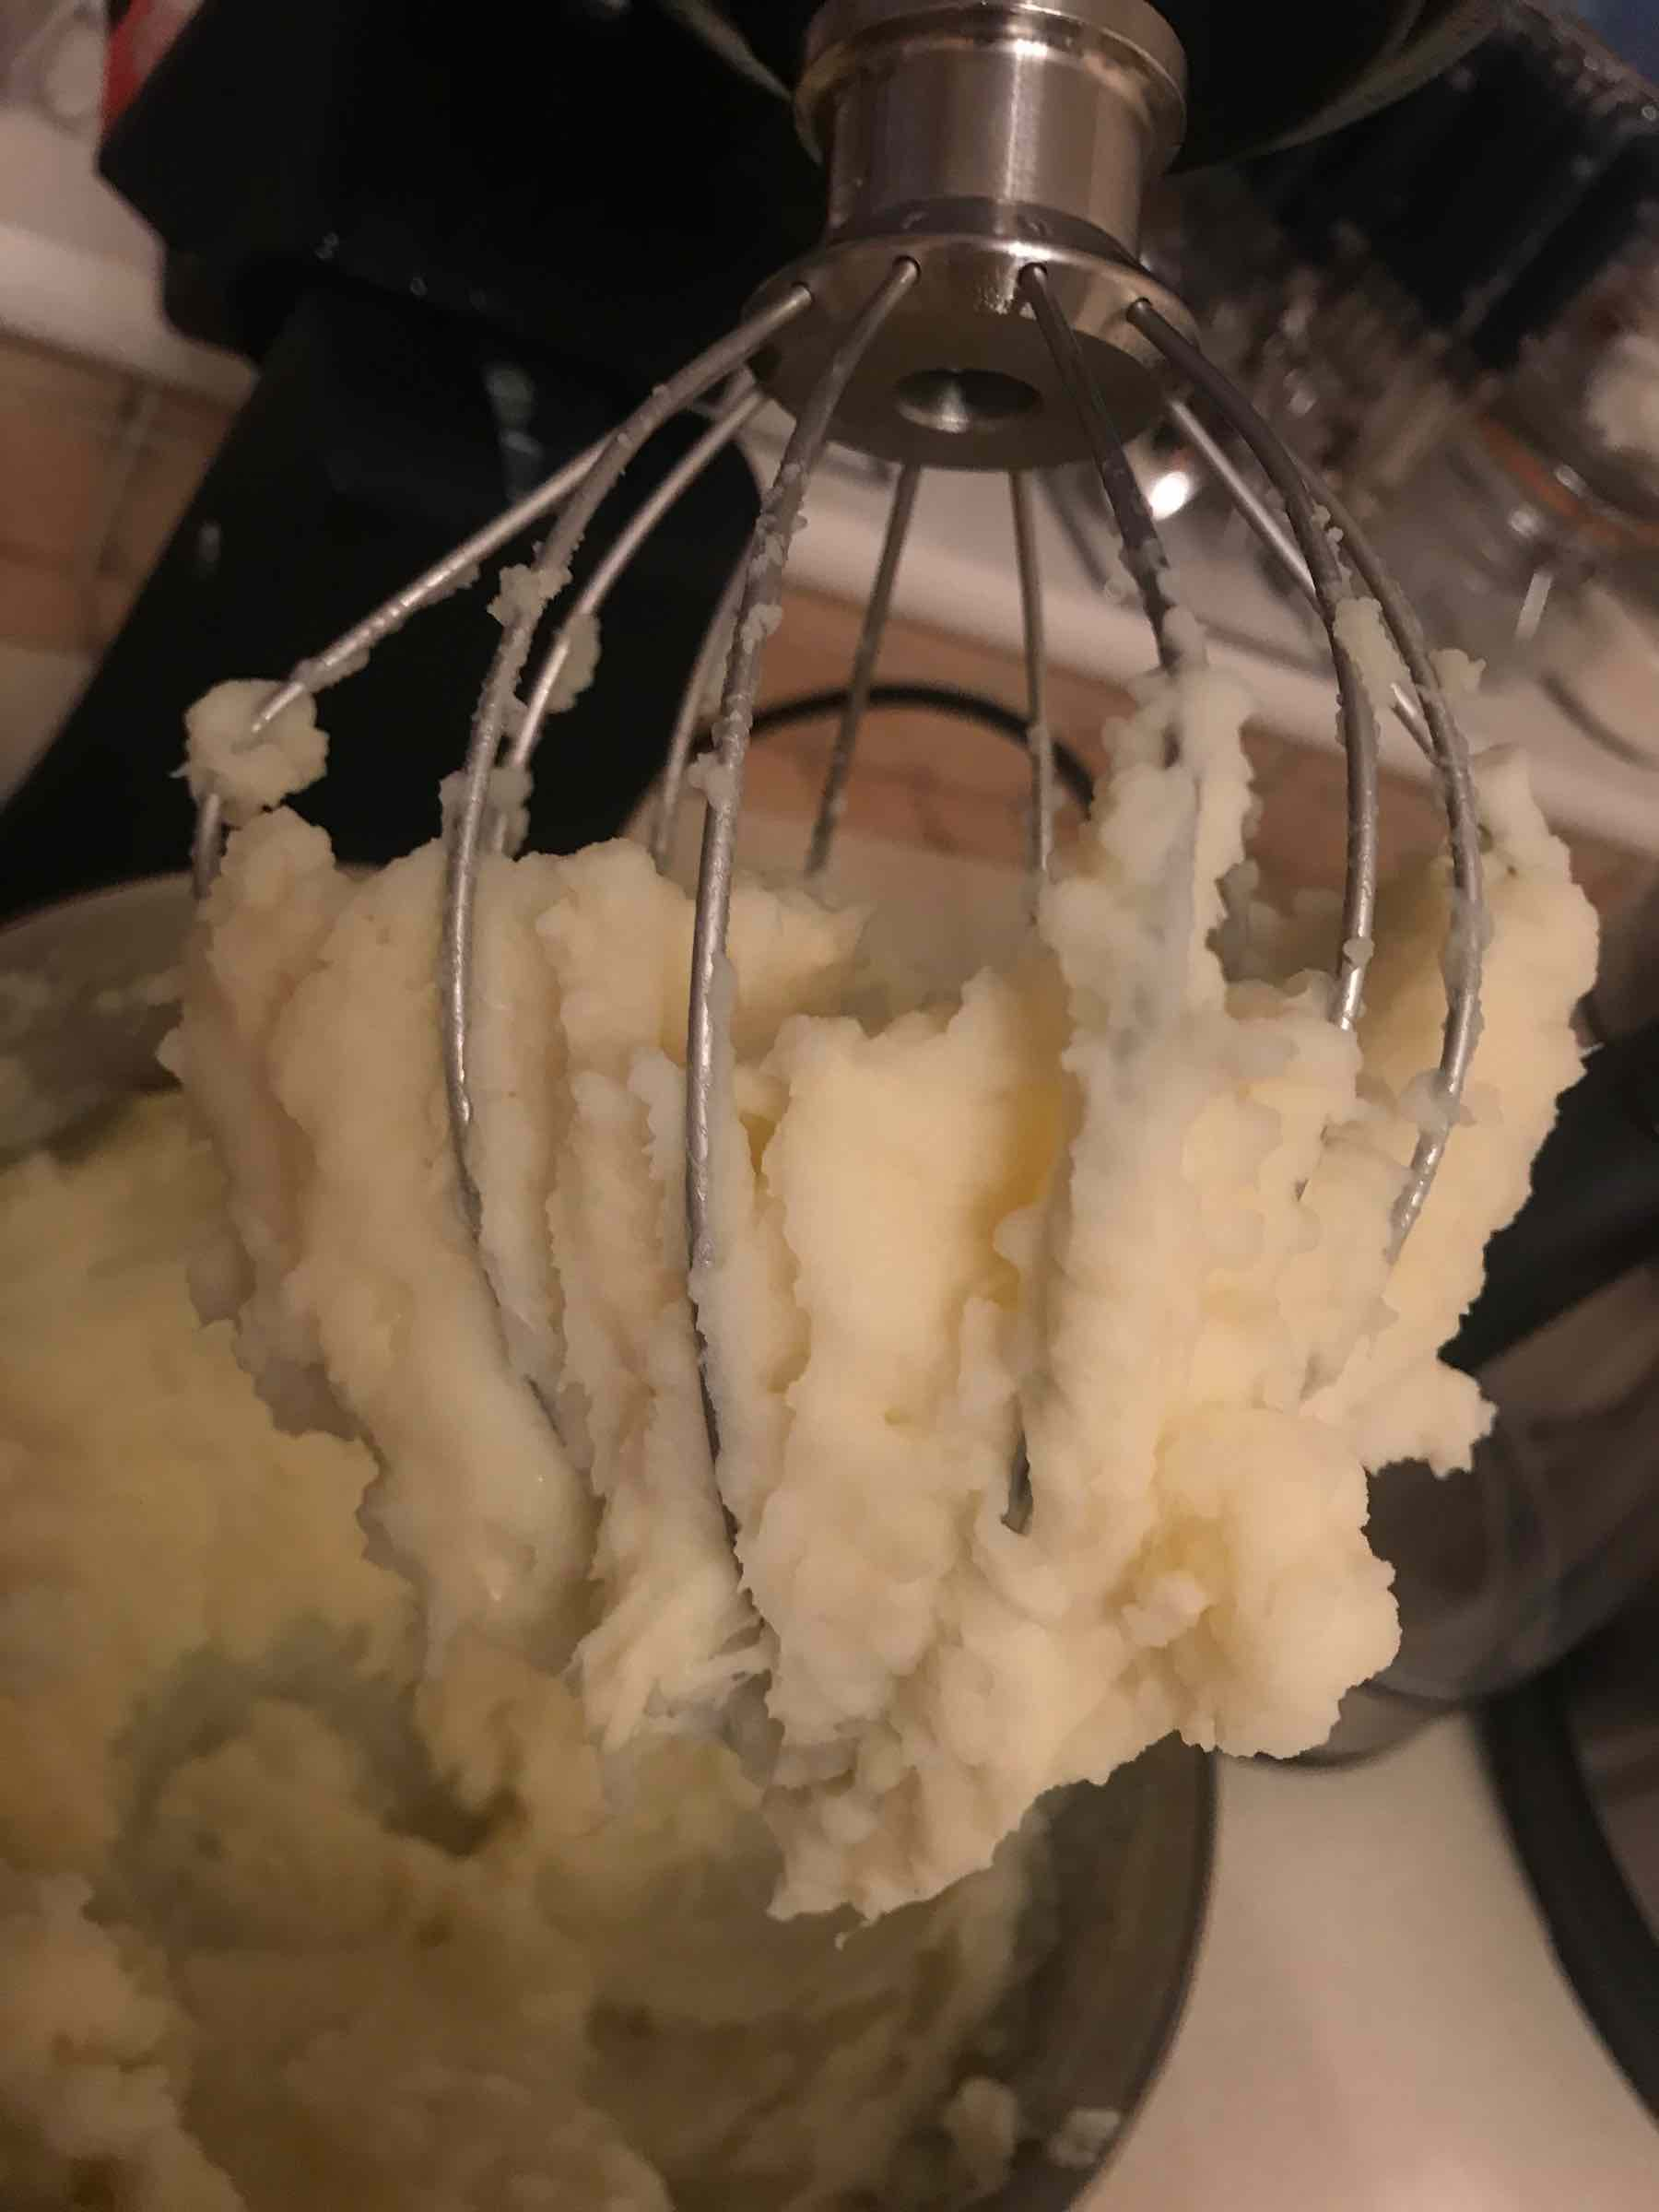 Mashed potatoes stuck to a balloon whisk